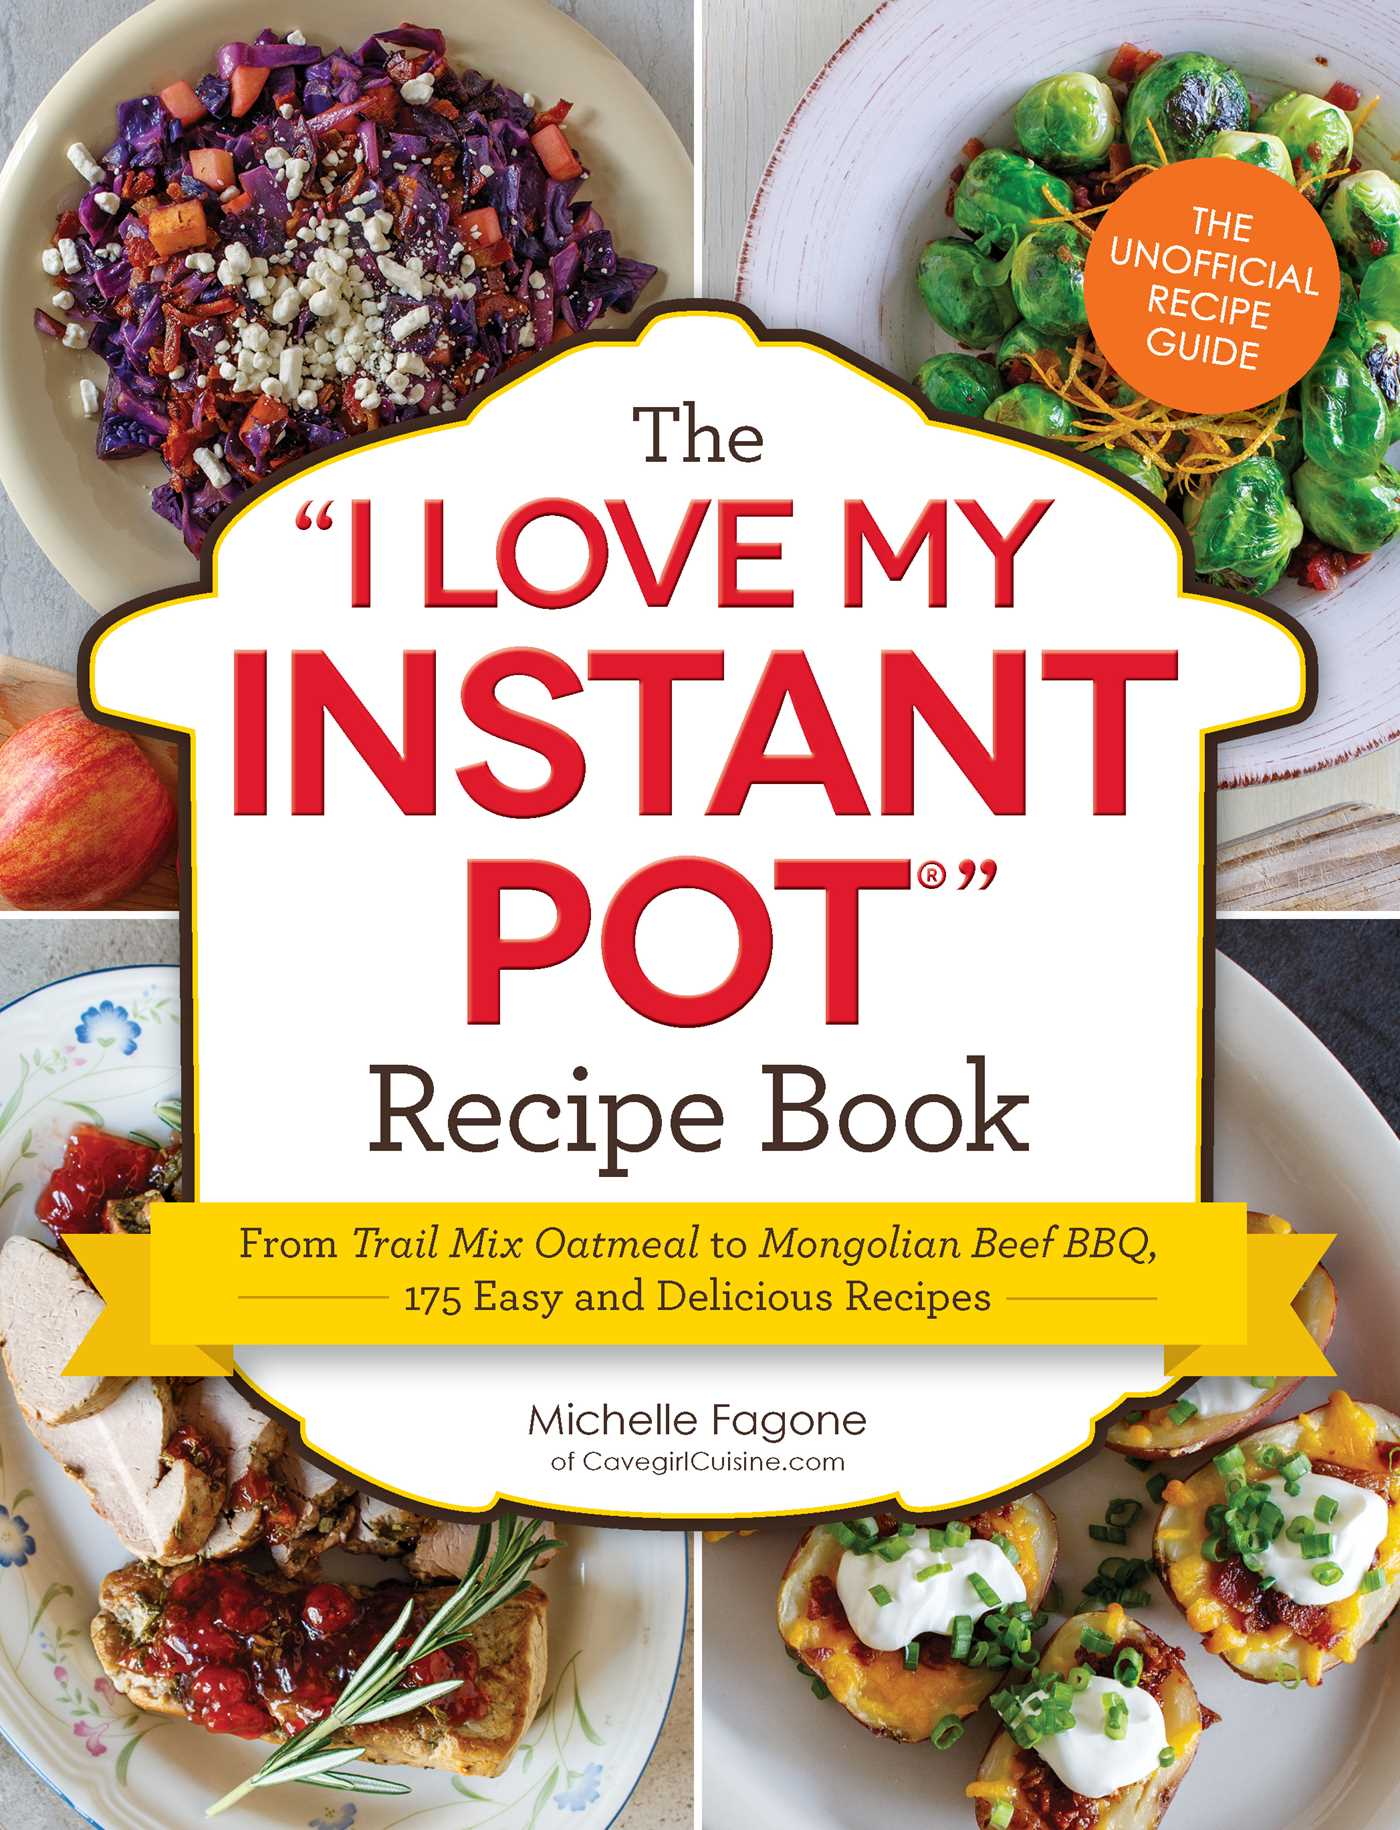 The i love my instant pot recipe book book by michelle fagone the i love my instant pot recipe book 9781507202289 hr forumfinder Image collections